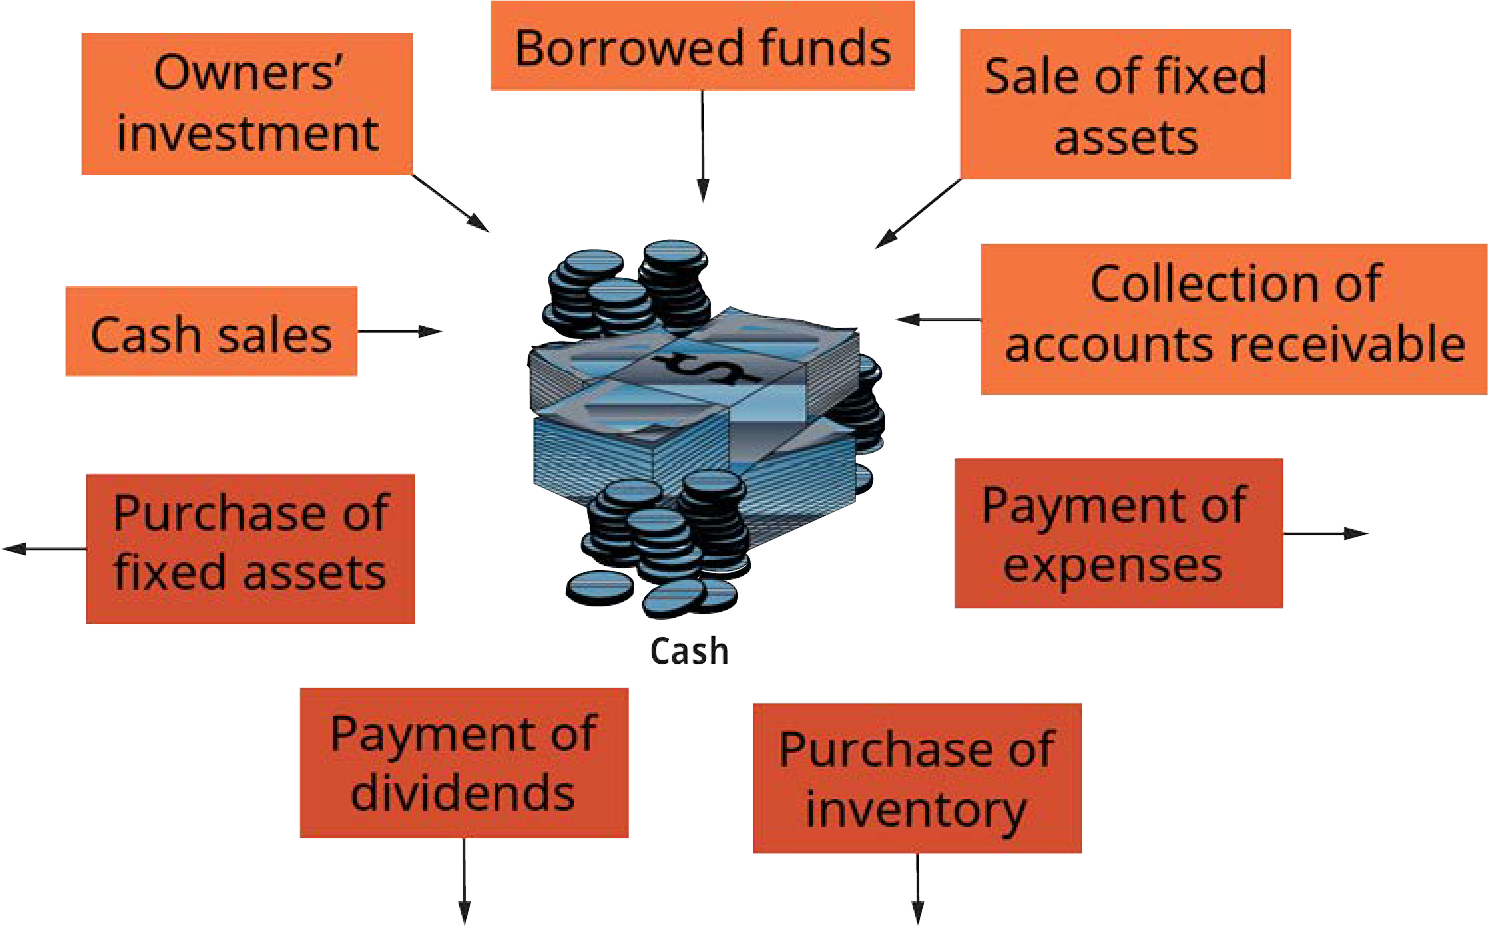 Exhibit 8.1 How Cash Flows through a Business (Attribution: Copyright Rice University, OpenStax, under CC BY 4.0 license.)